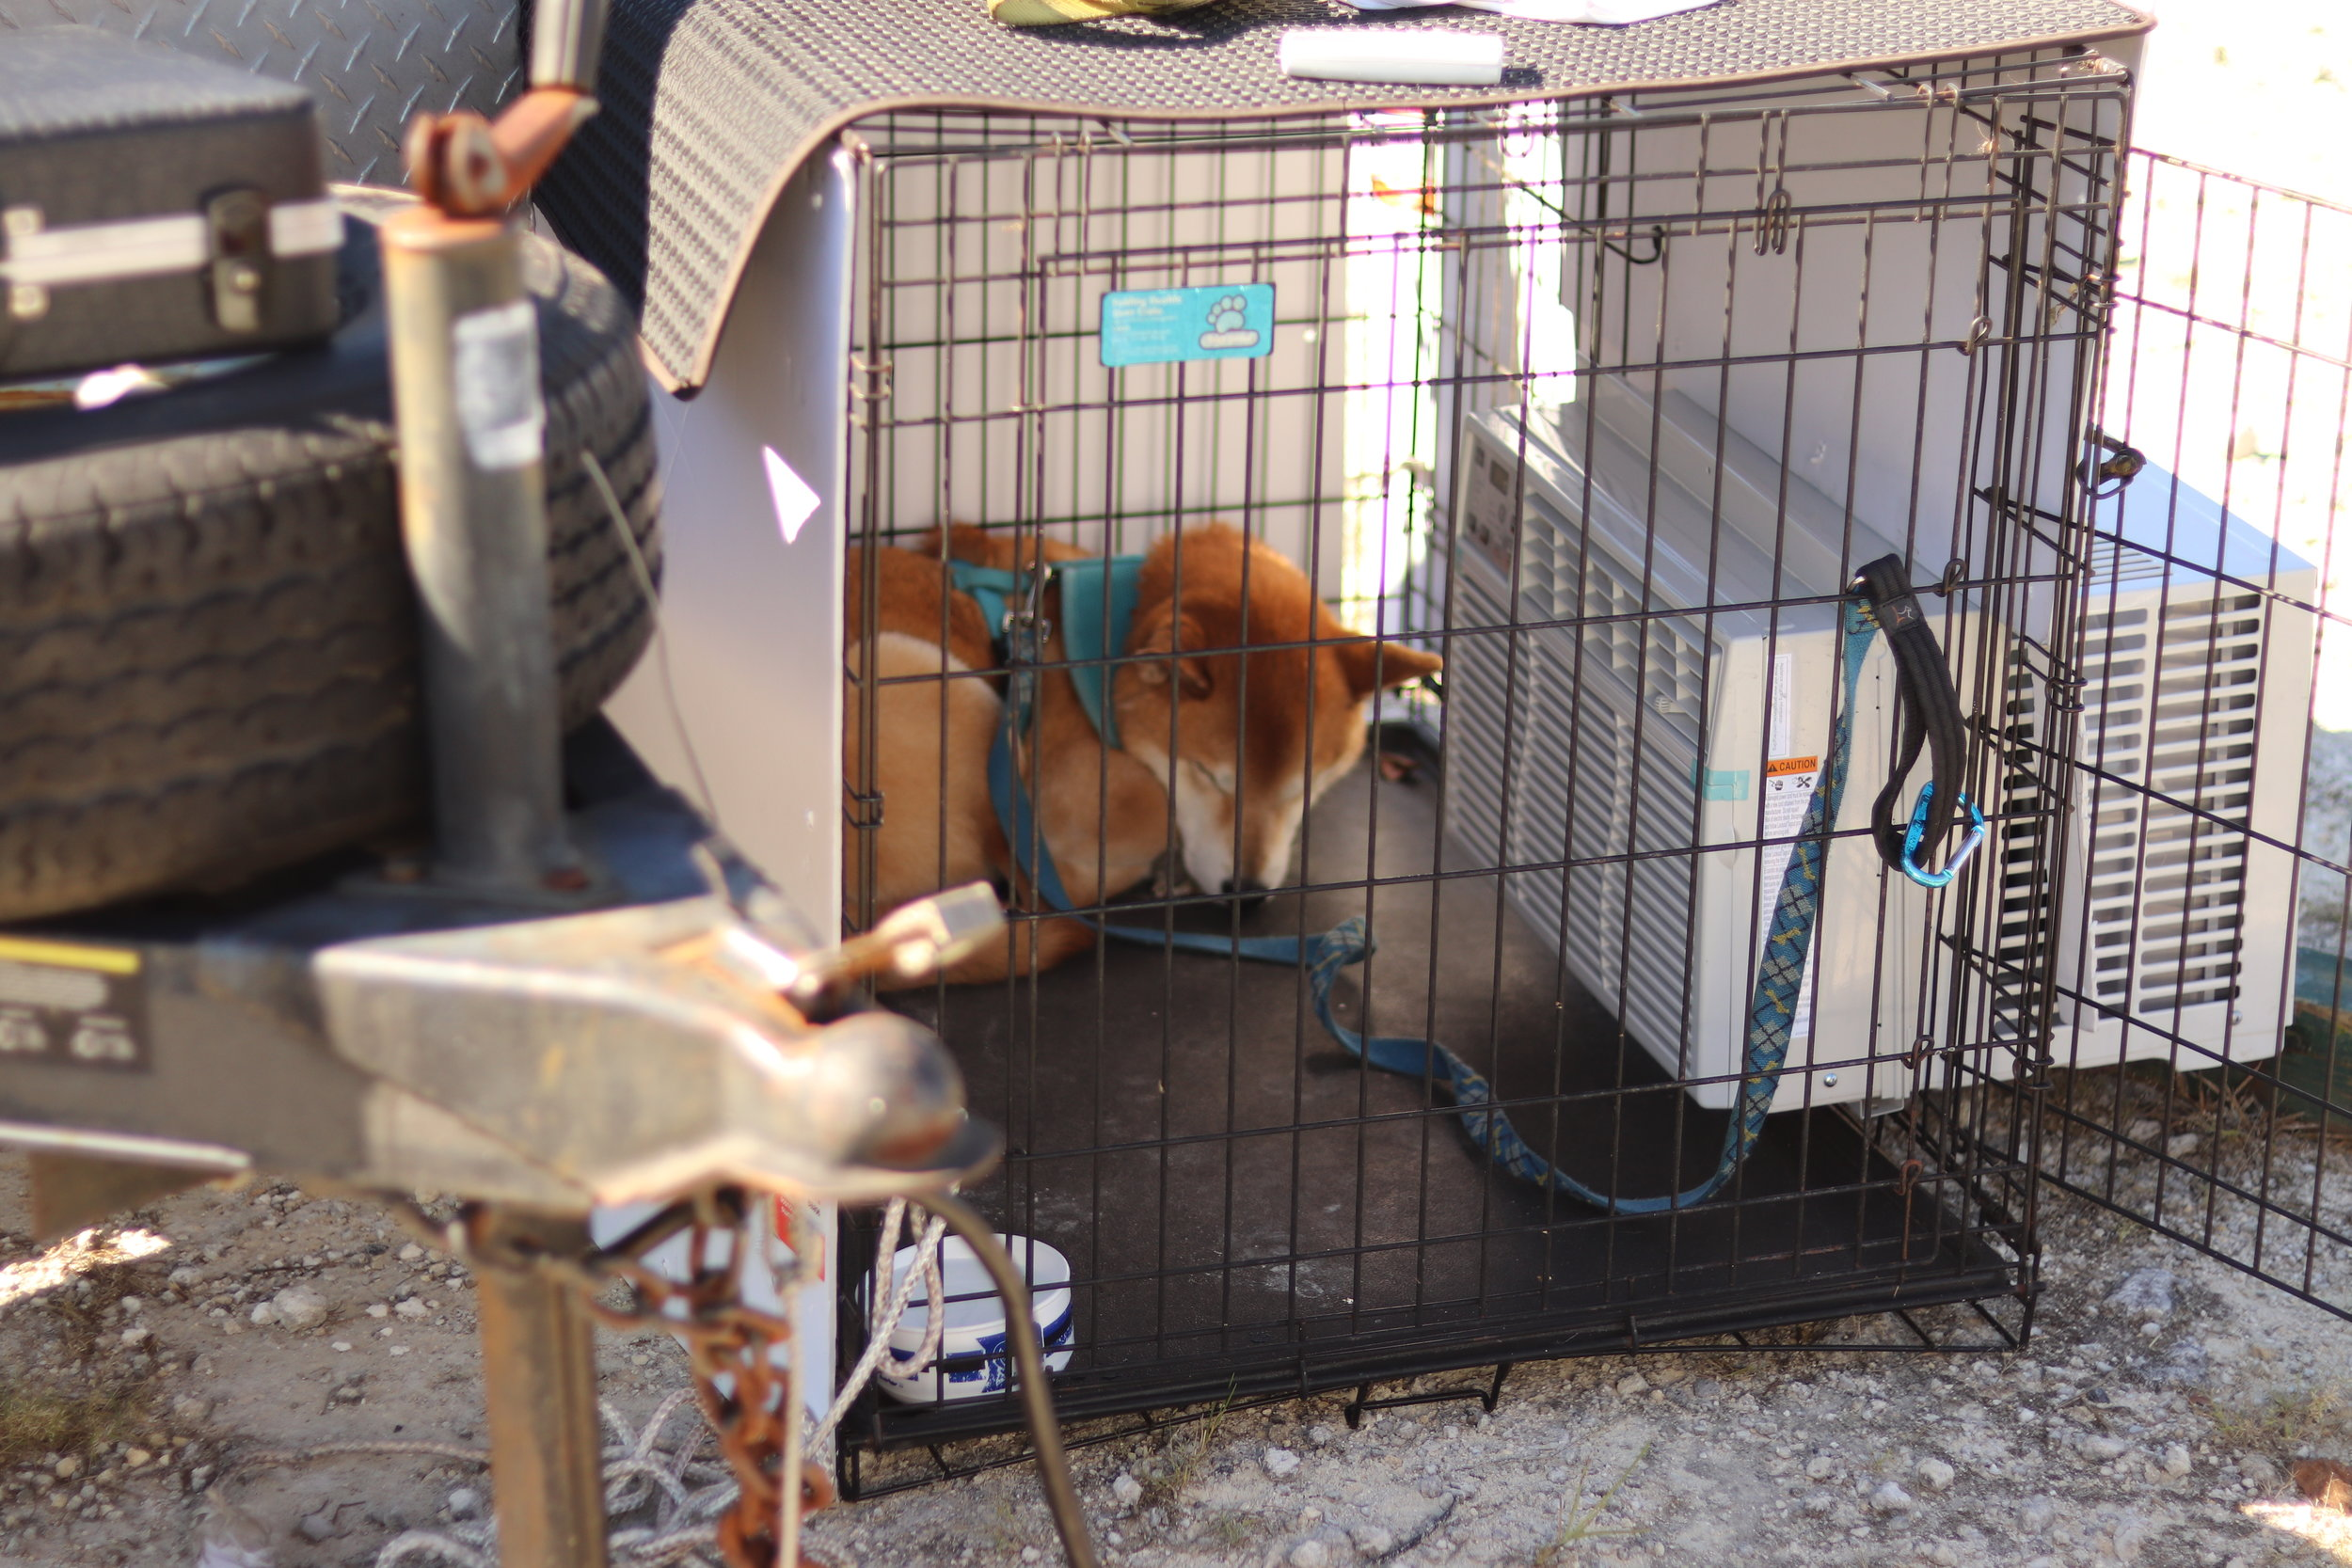 Paiku sleeping in his cool AF kennel on a hot day at the Florida International Rally & Motorsports Park